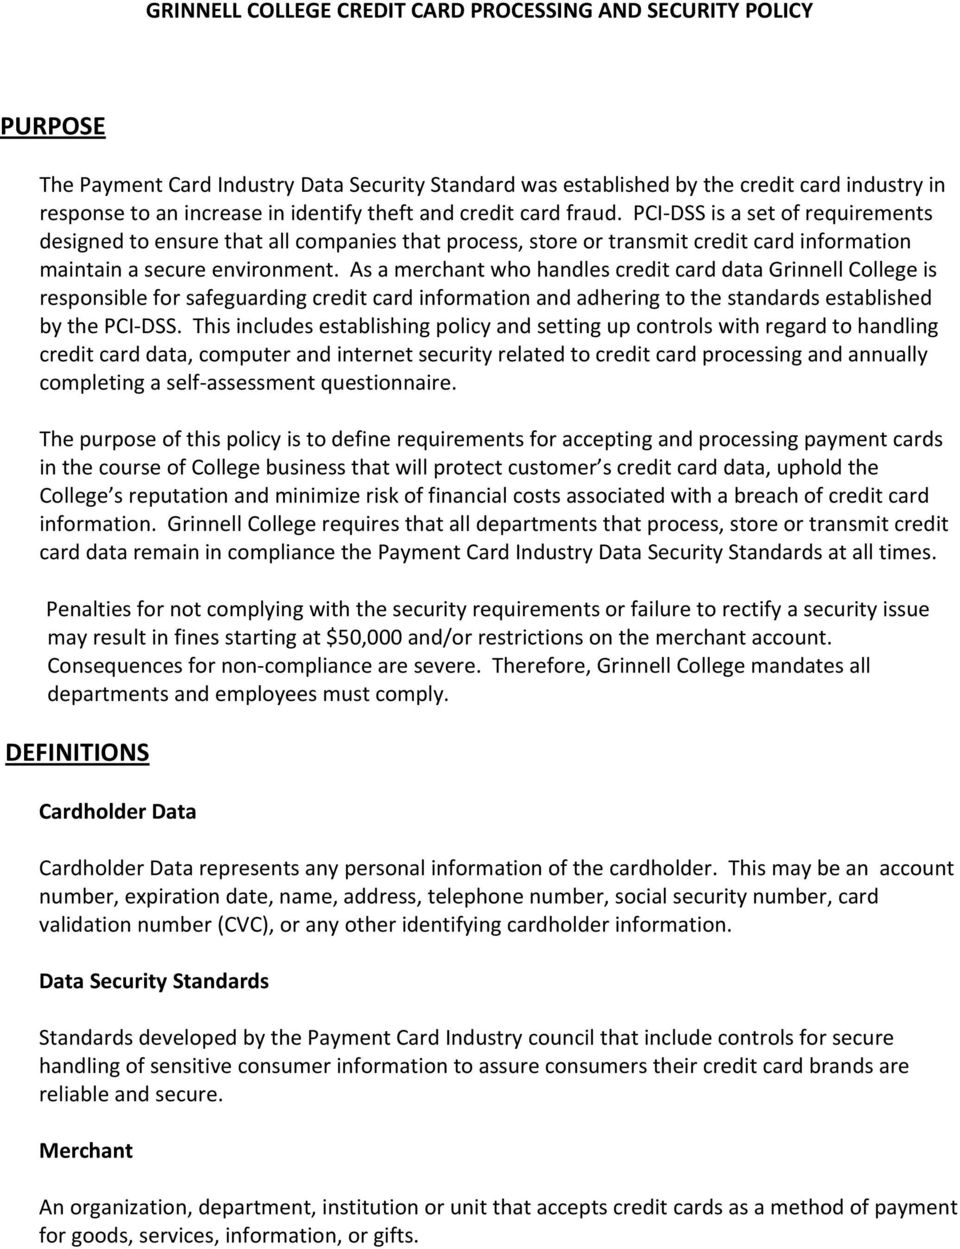 As a merchant who handles credit card data Grinnell College is responsible for safeguarding credit card information and adhering to the standards established by the PCI DSS.